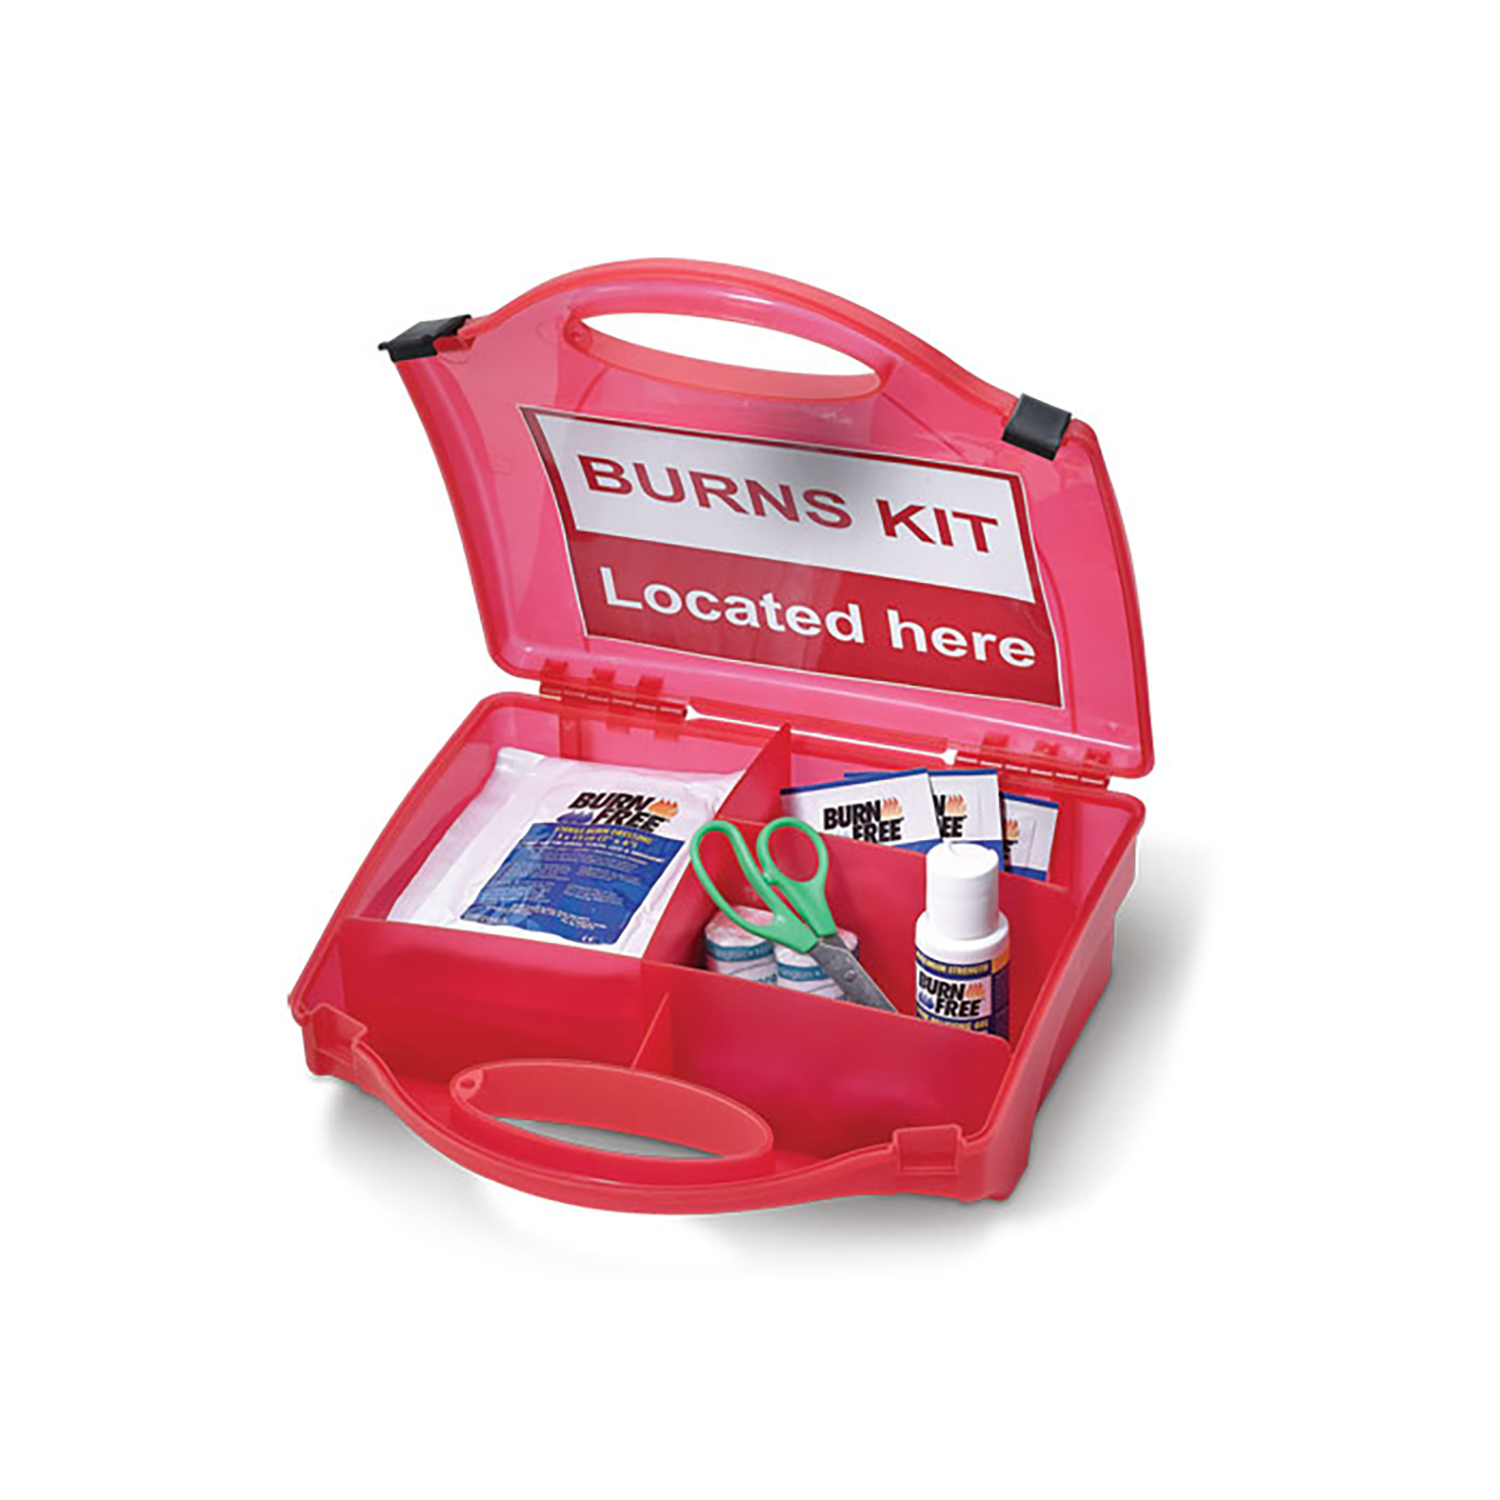 Image for 5 Star Facilities Burns Kit